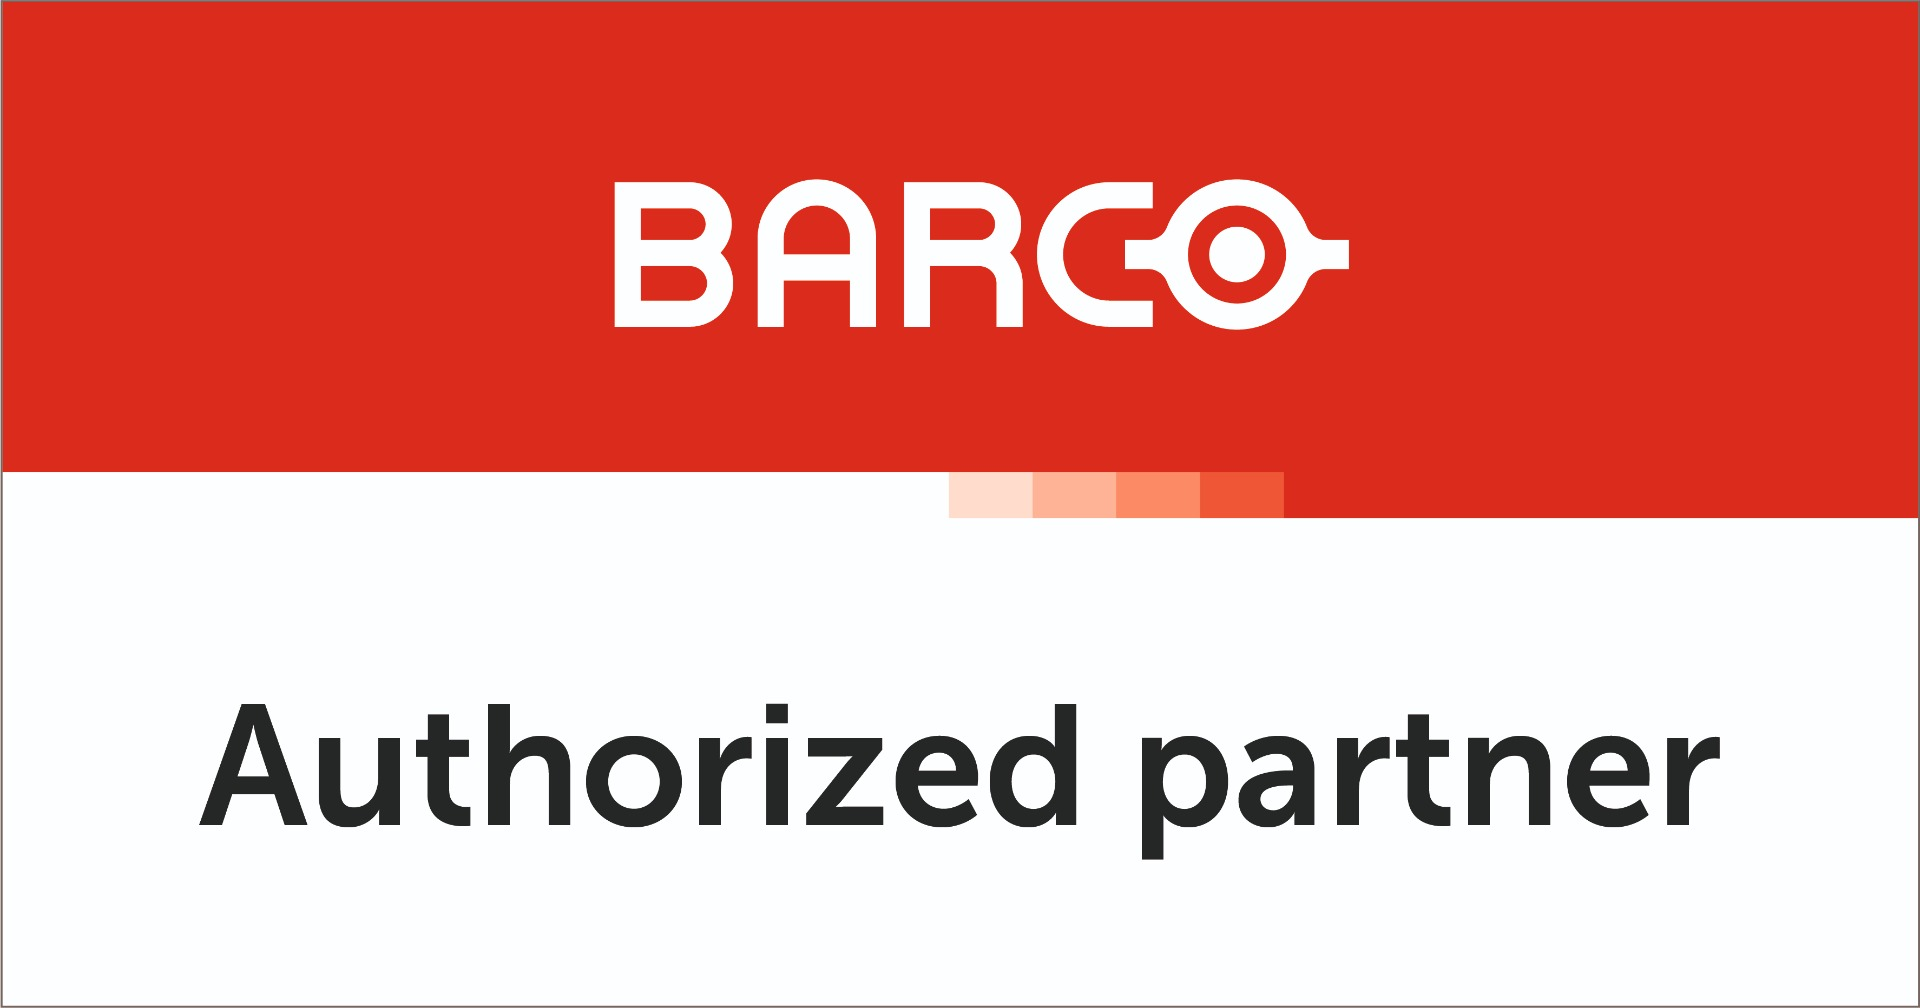 Barco Authorised Partner